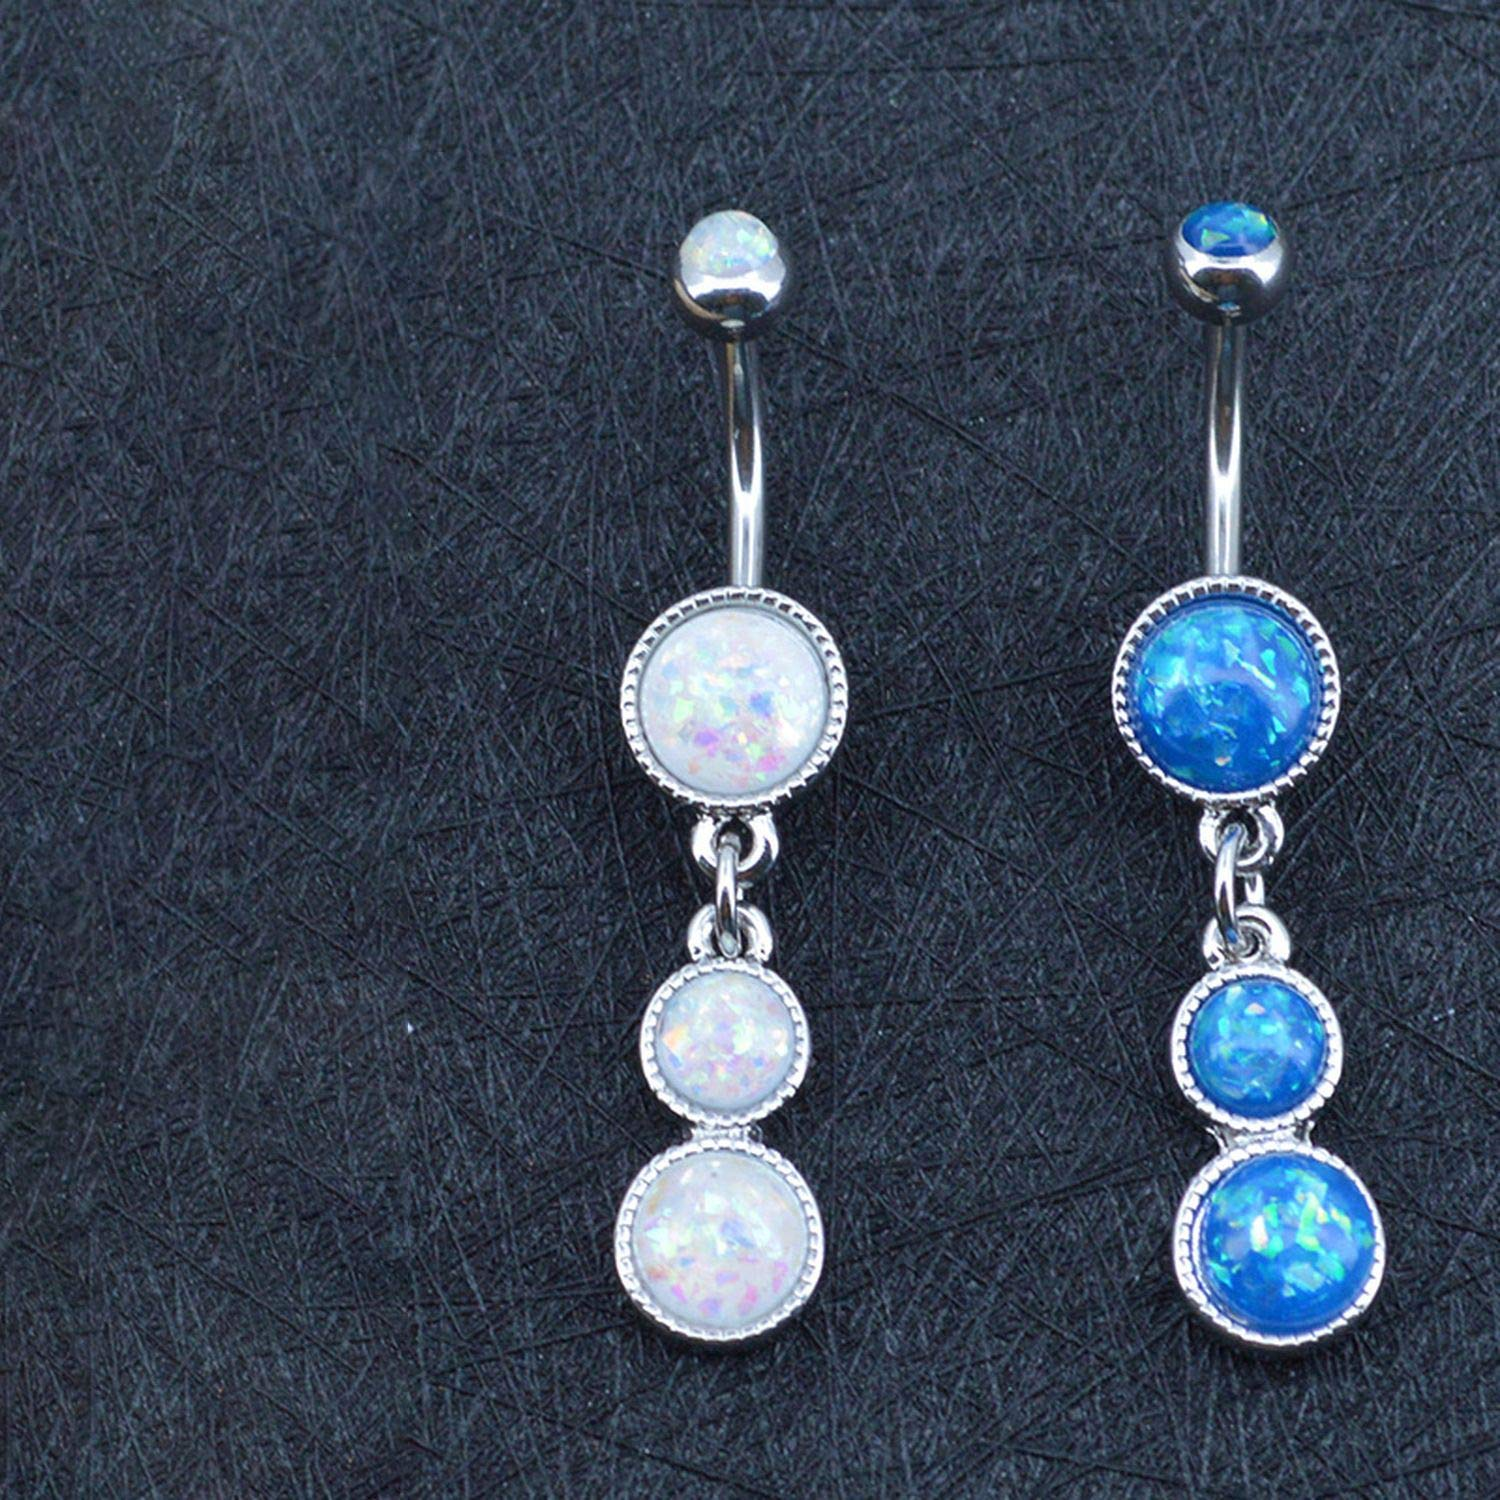 Opal Navel Piercing Belly Button Ring Stainless Steel Retro Piercing